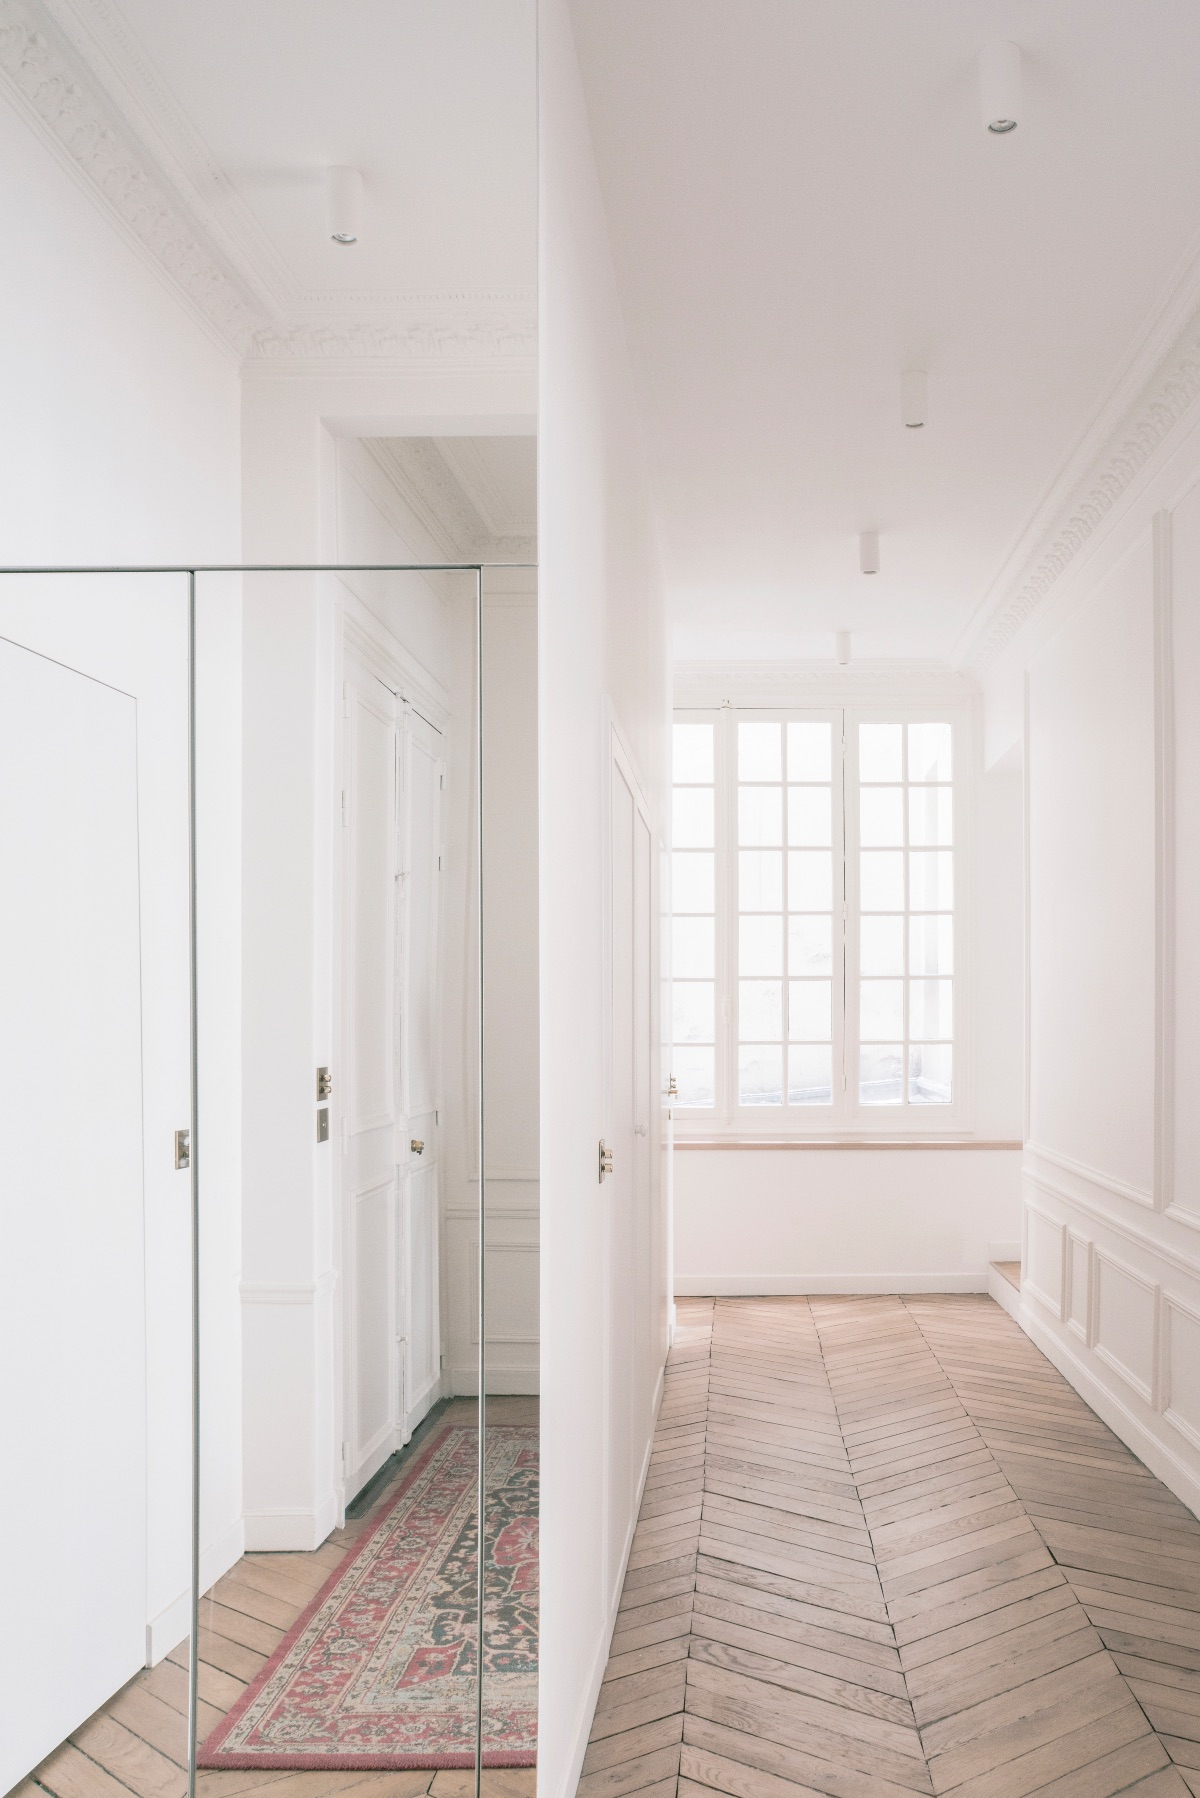 3_NEA_Chaptal Apartment_Inspirationist